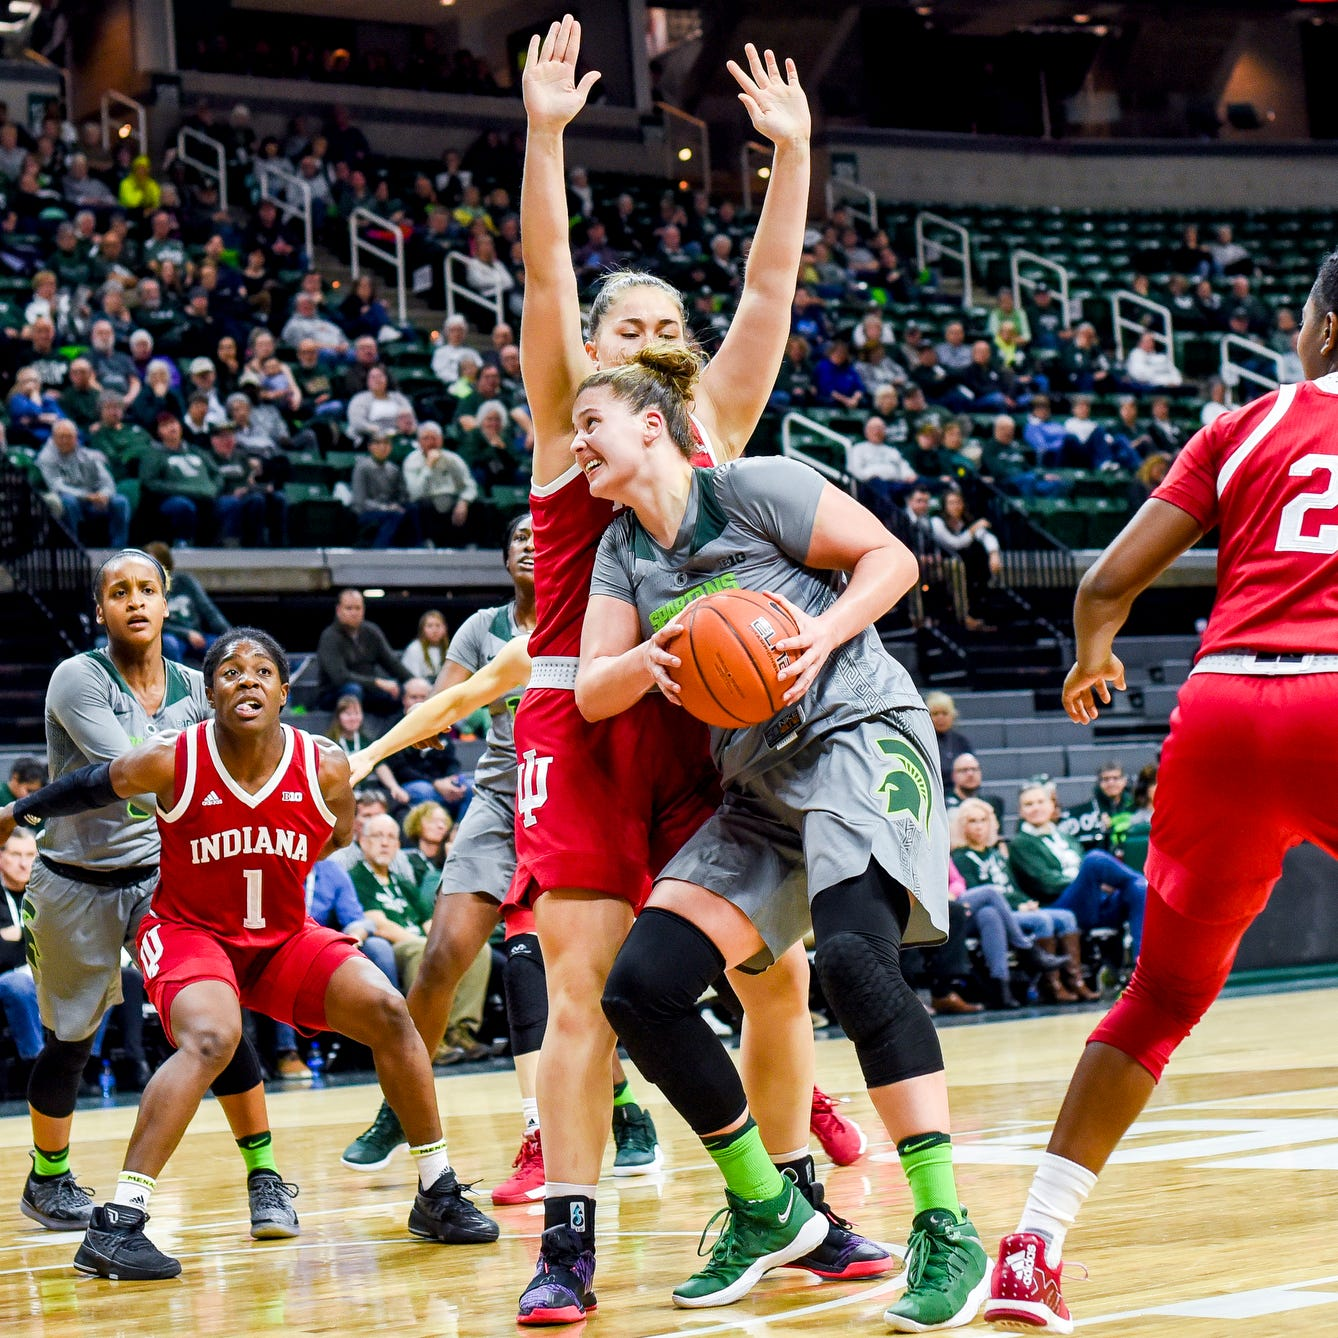 With Jenna Allen on cusp of milestone, MSU women's basketball aims to get her on track